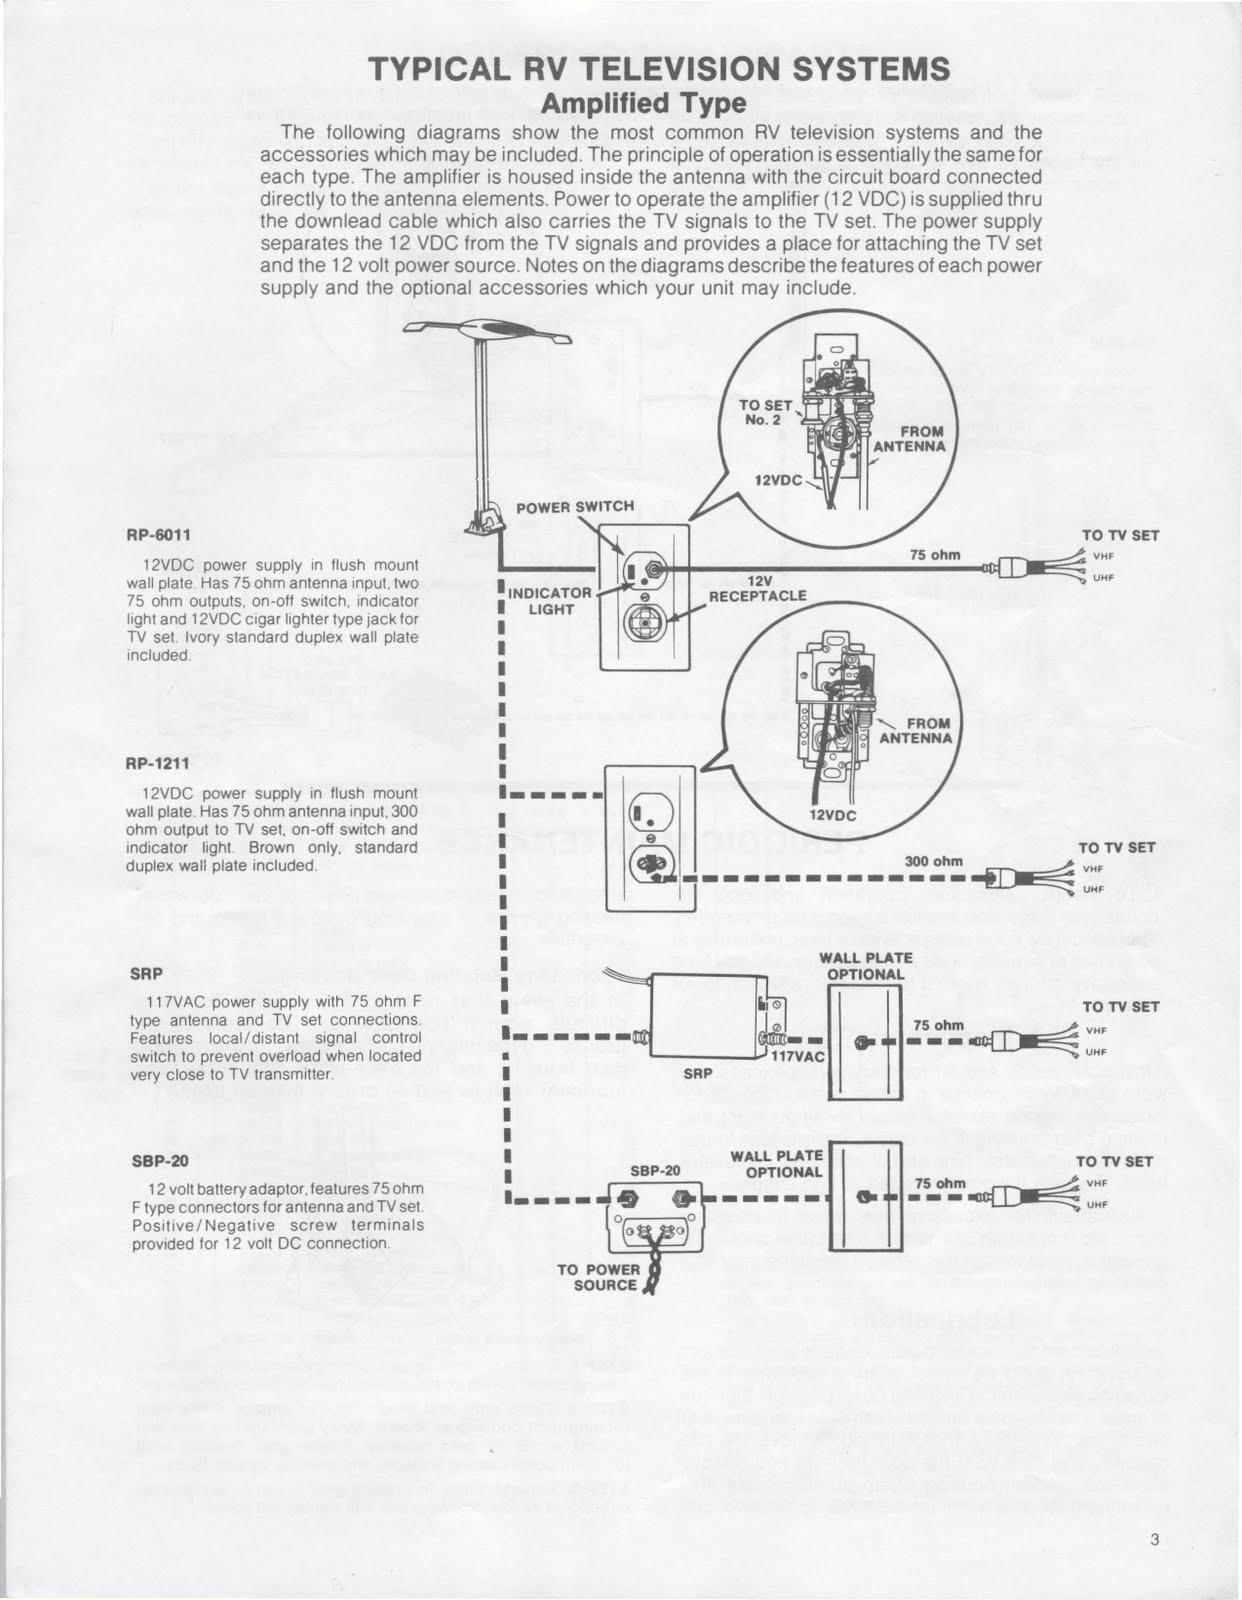 Wiring diagram for rv tv wiring diagram winnebago the wiring diagram readingratnet ccuart Image collections